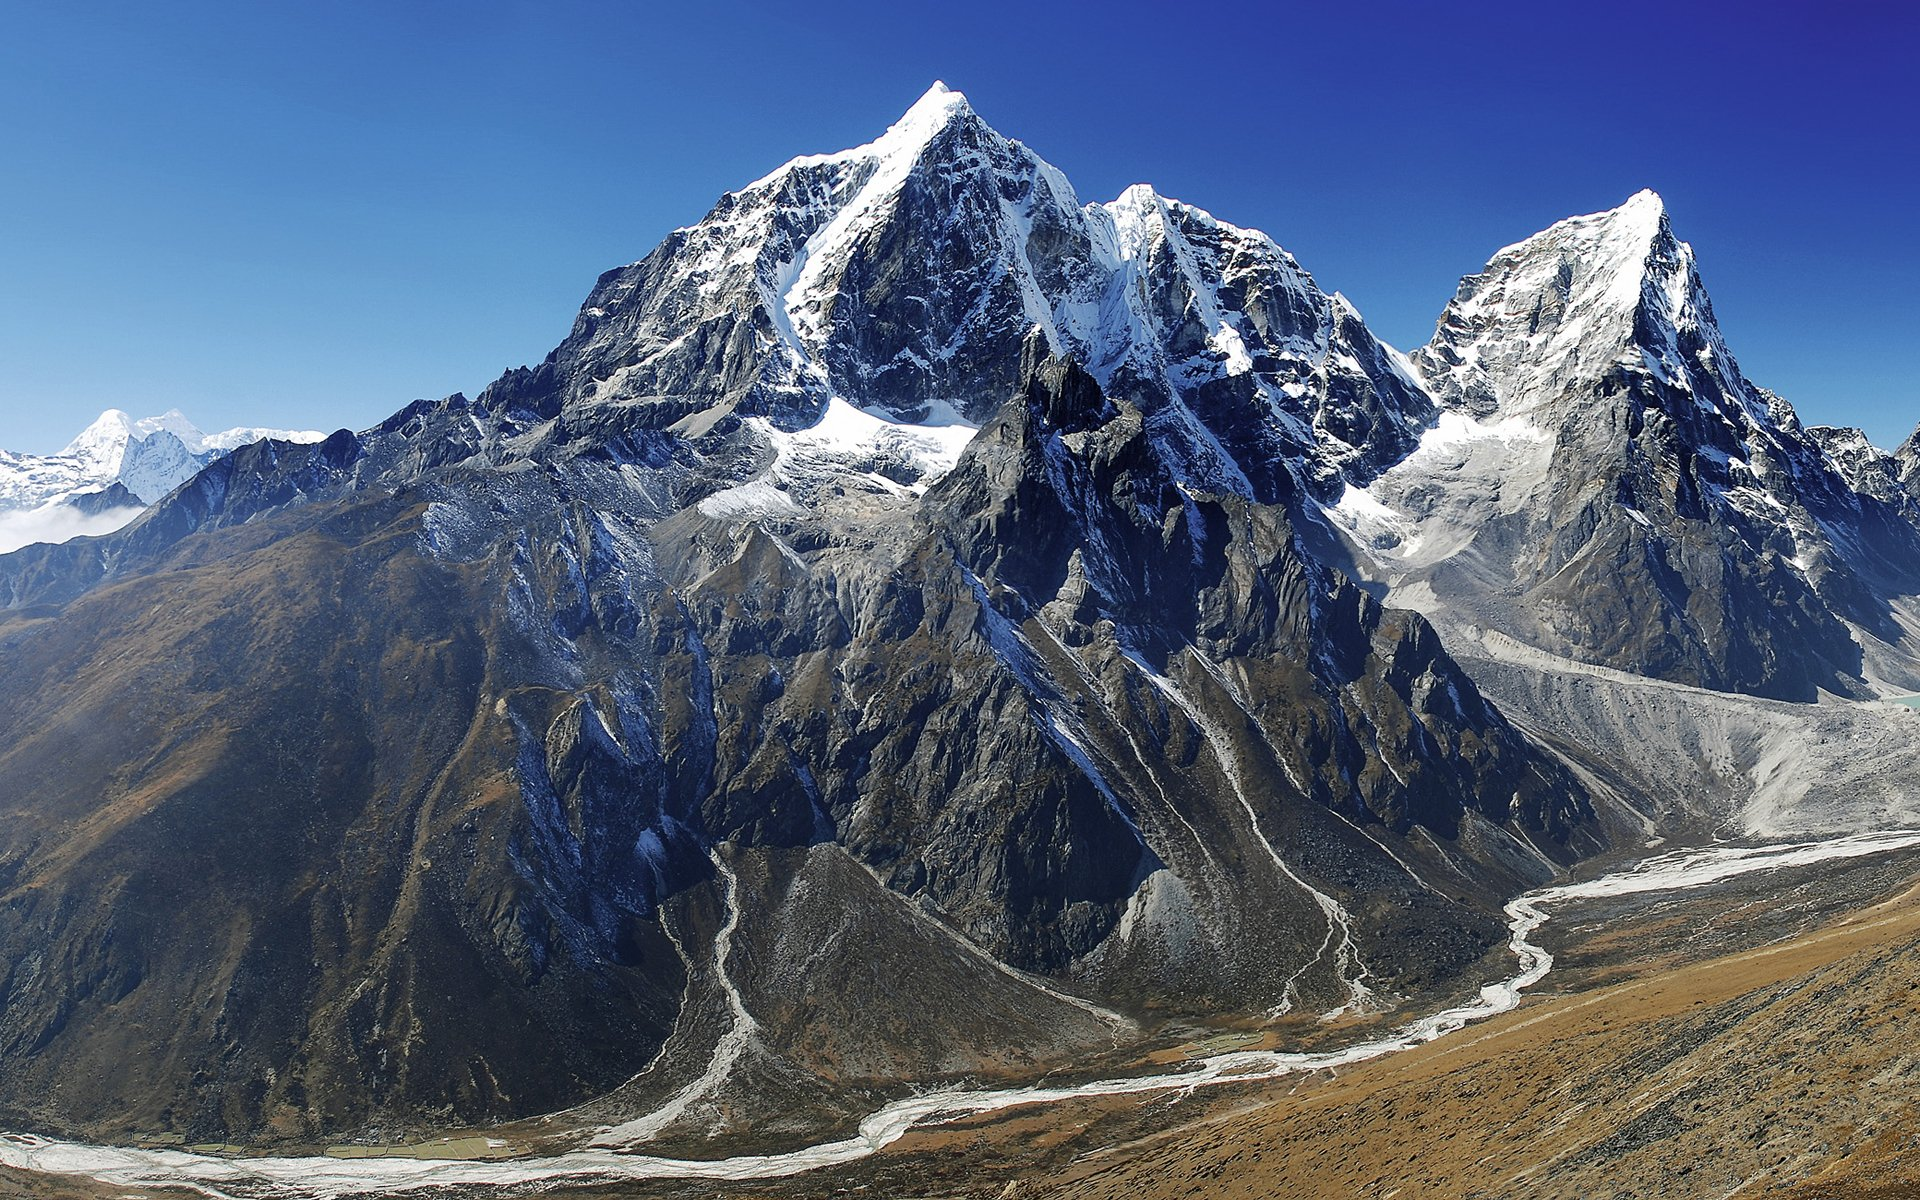 39+] Mount Everest HD Wallpaper on WallpaperSafari